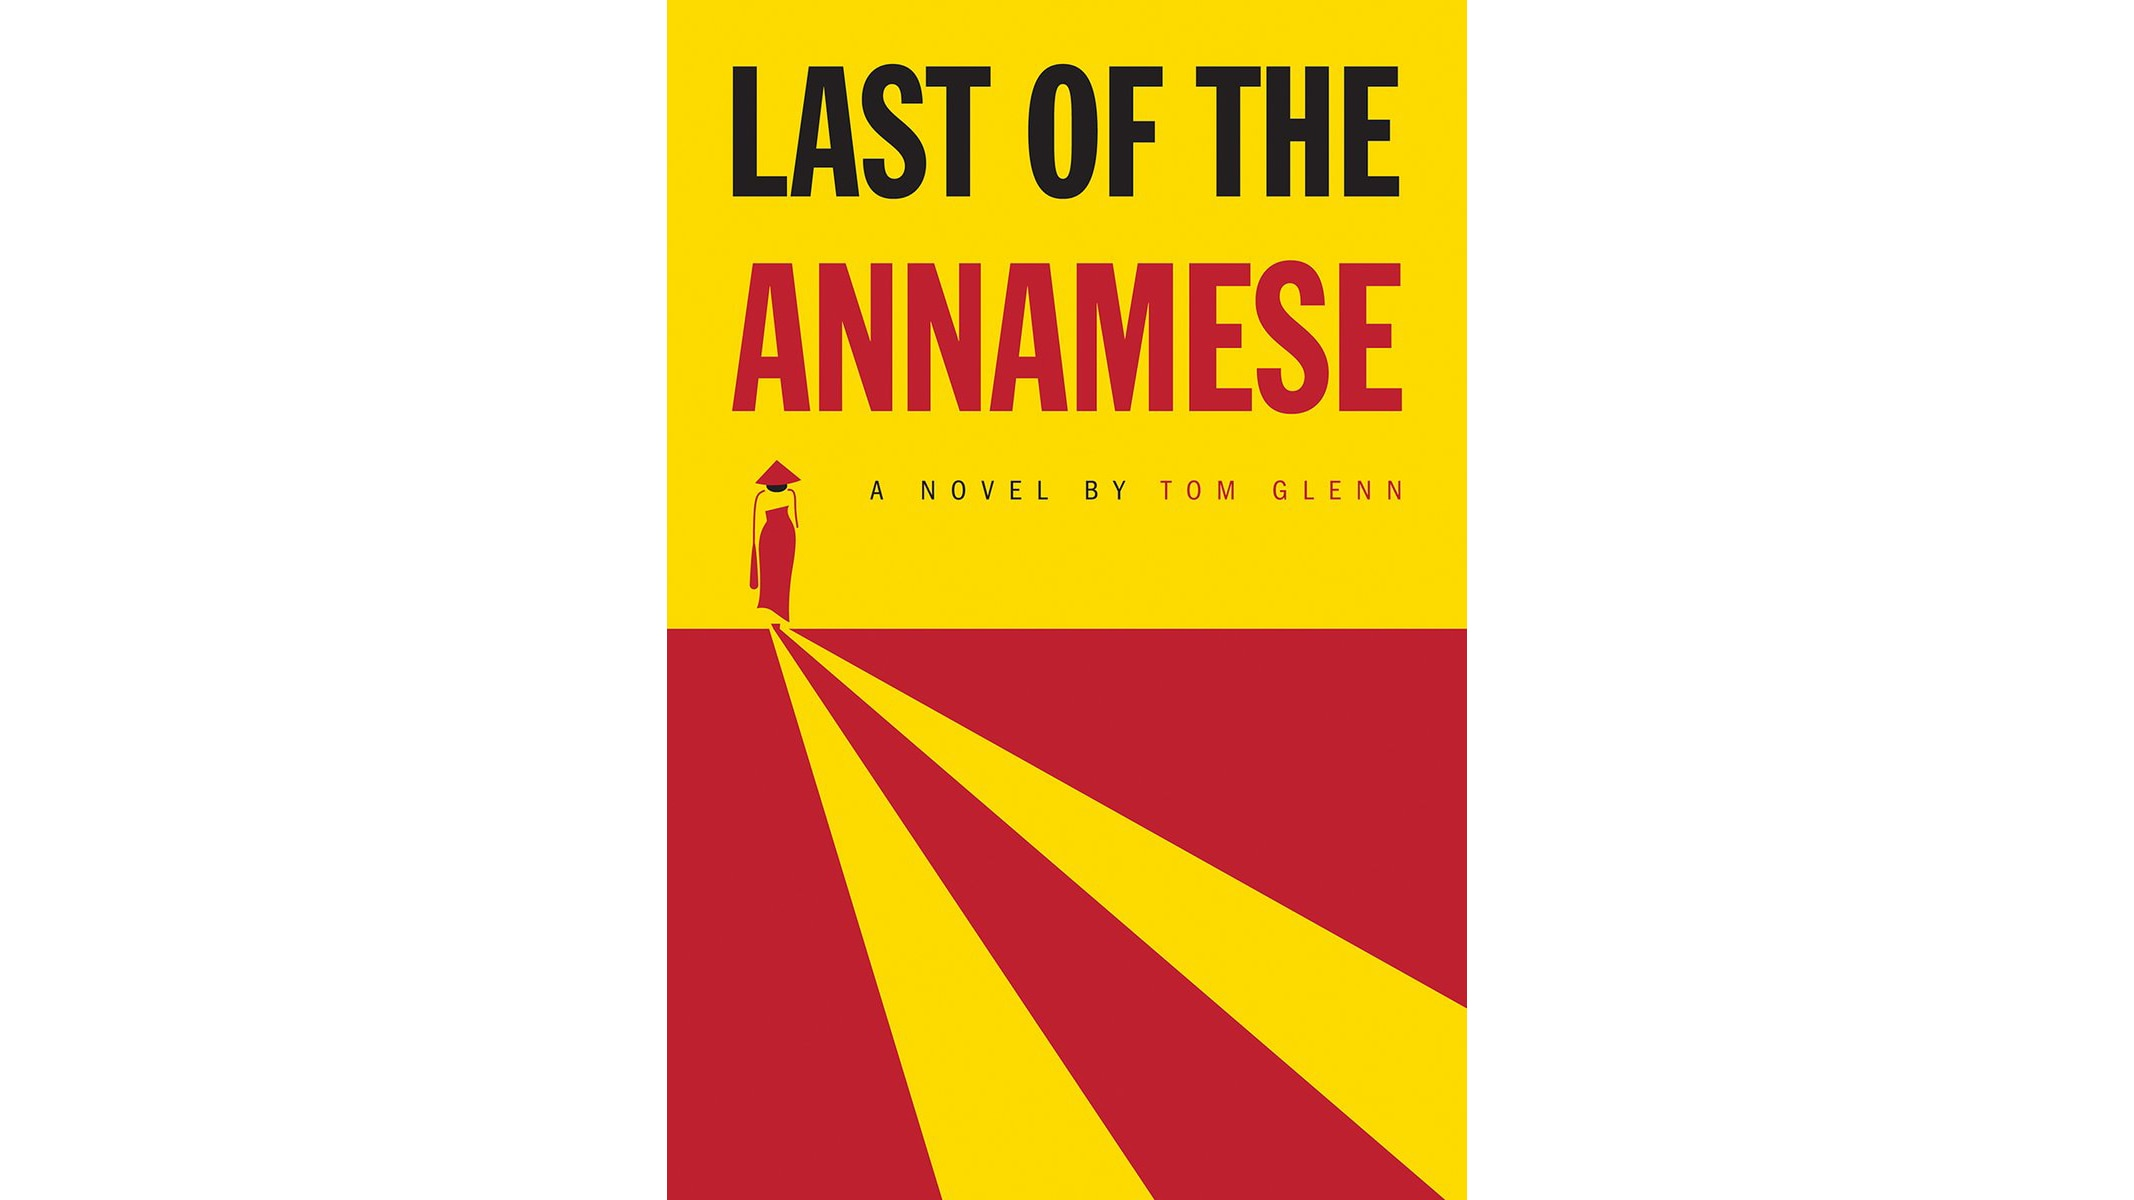 Spring 2017 book review -- Last of the Annamese